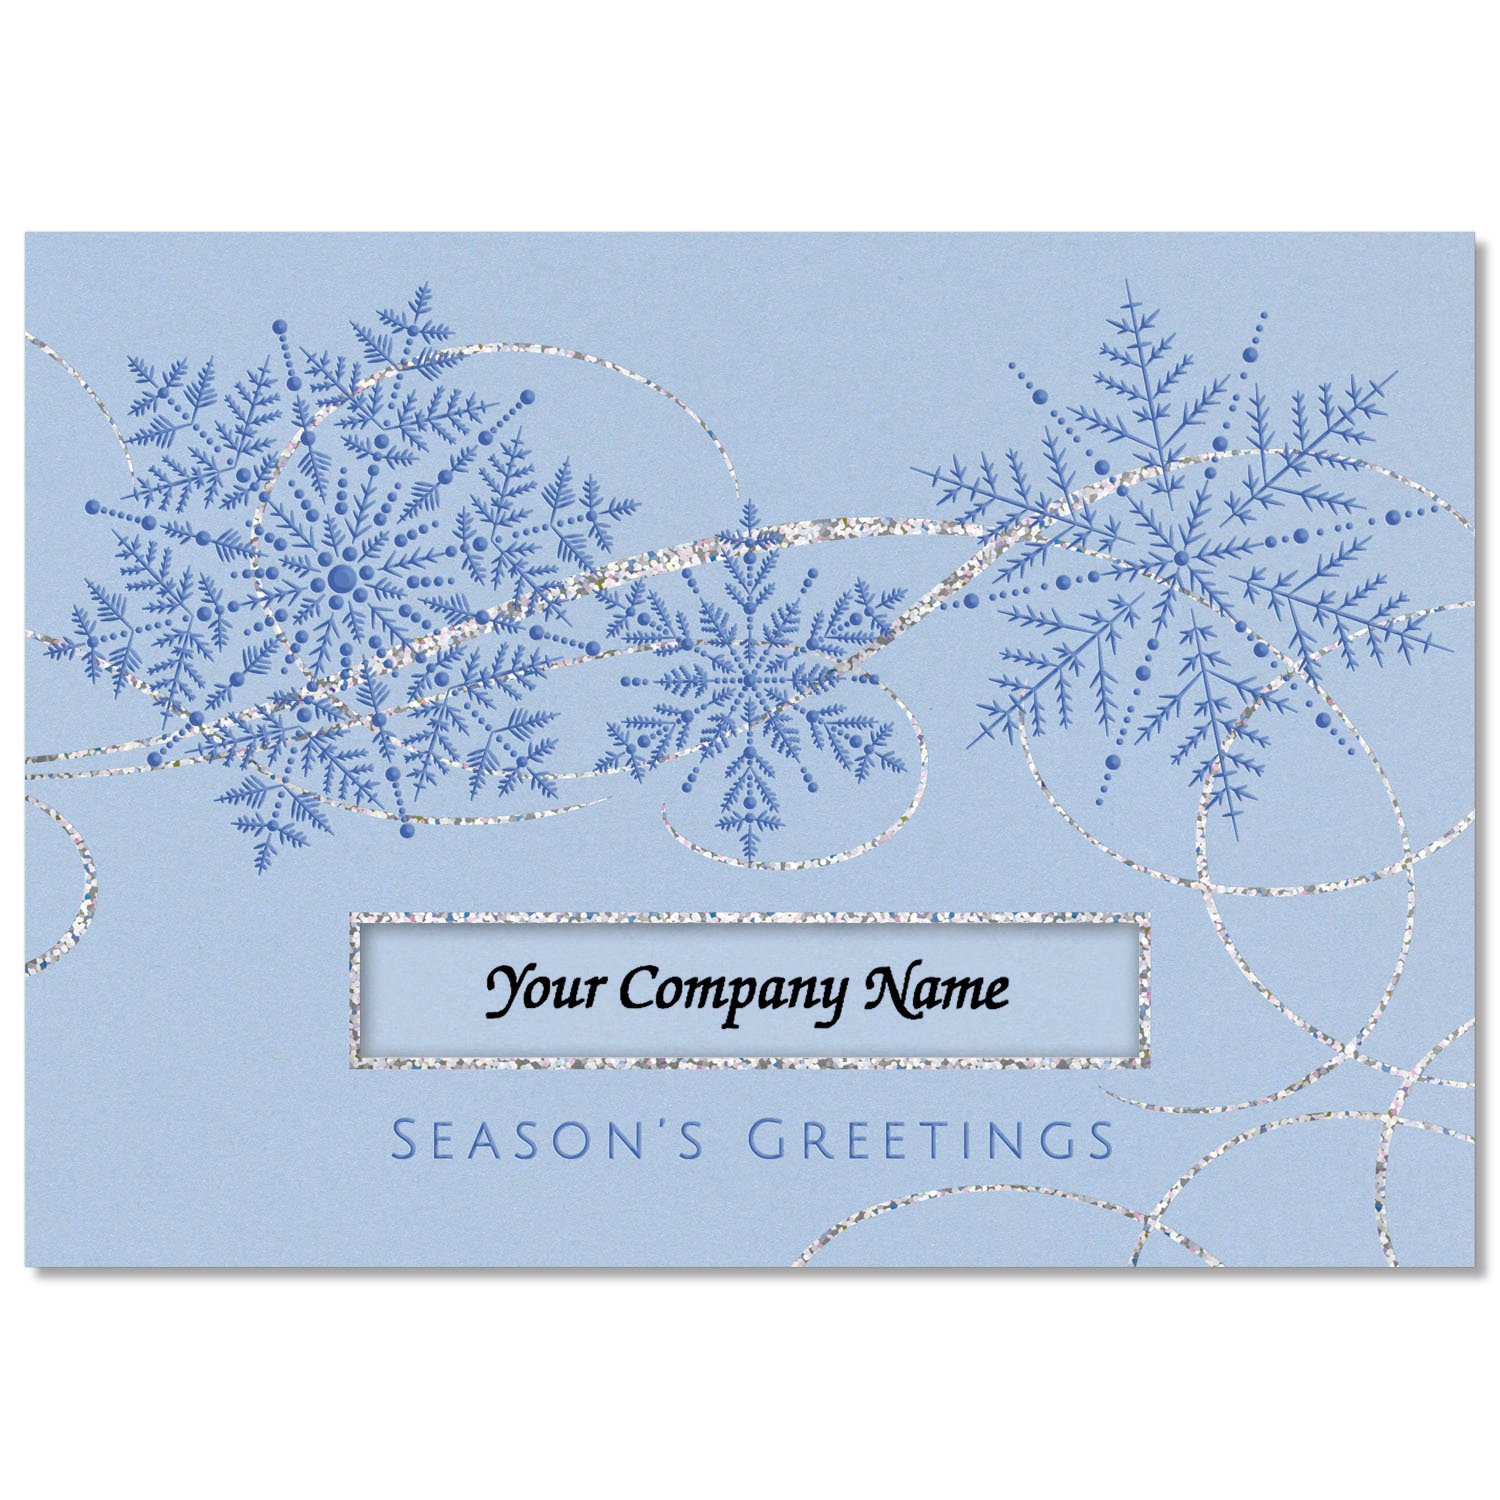 Snowflakes and Swirls Holiday Card